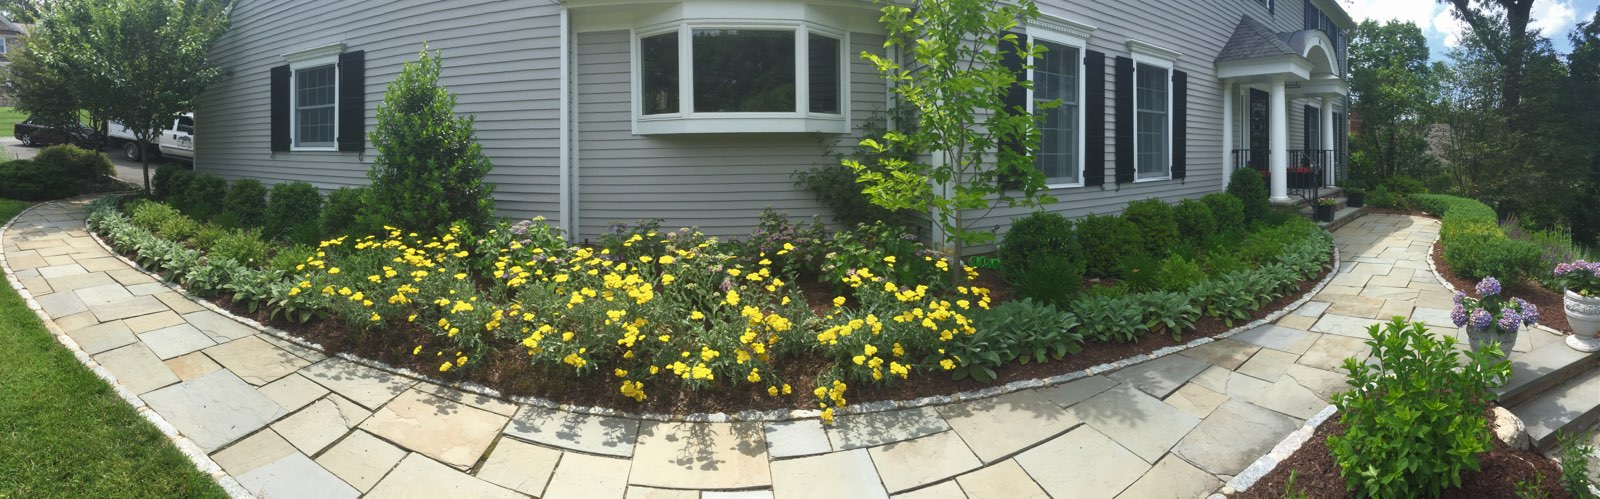 Over 20 Years Of Landscape Design Perfection